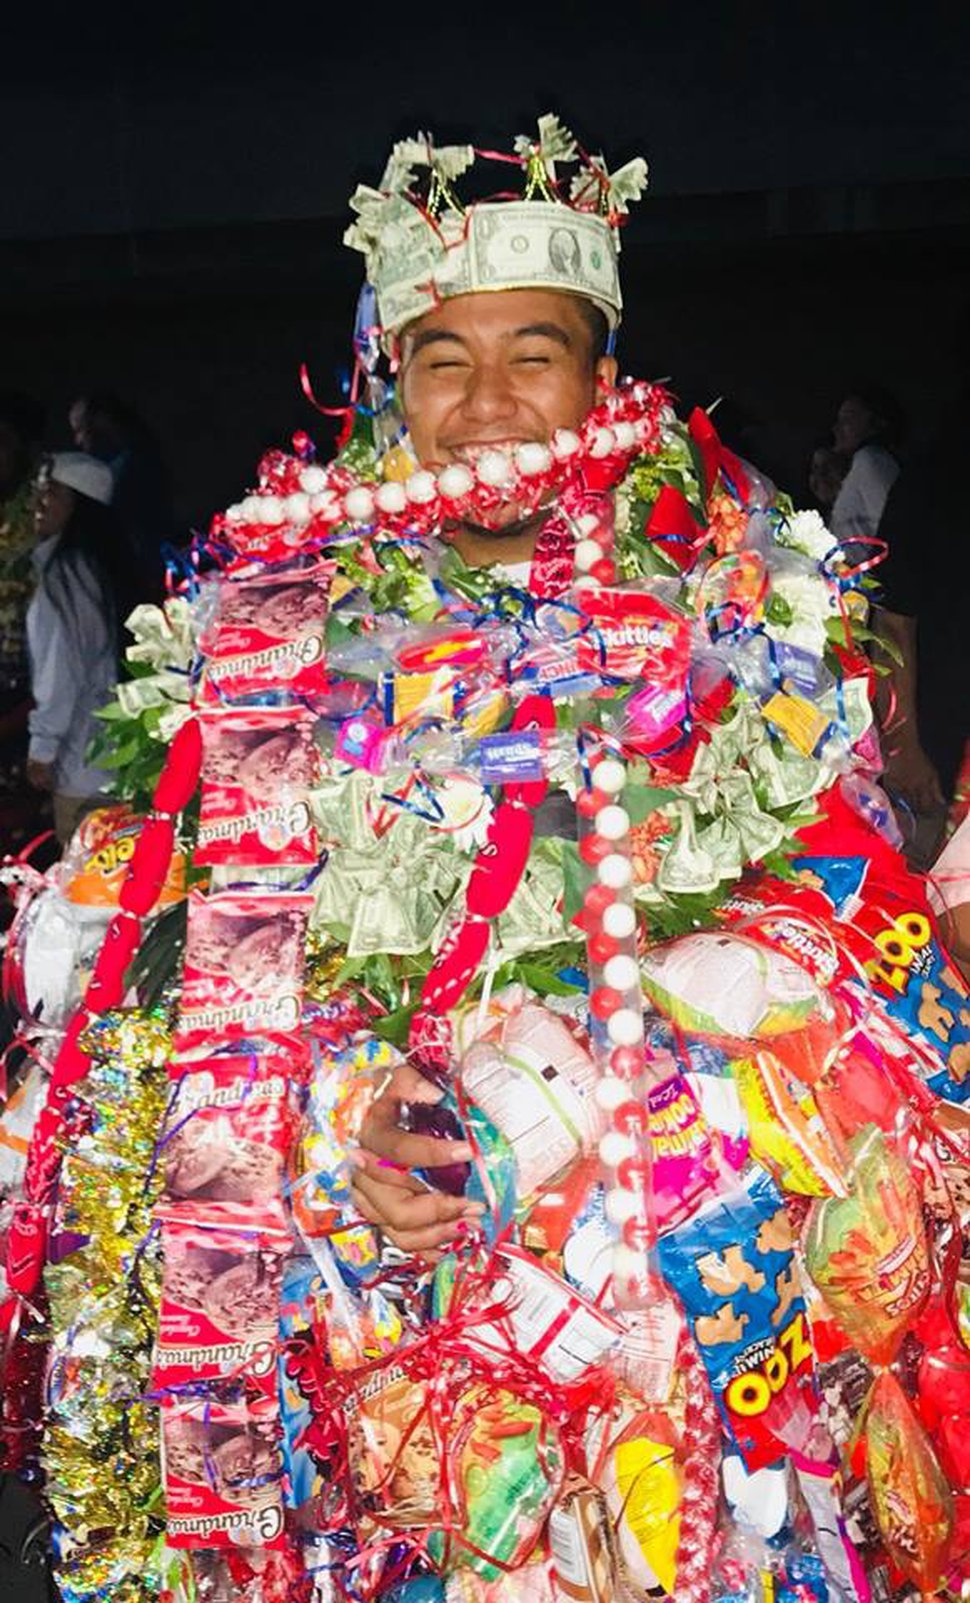 (Courtesy of M. Vida Hafoka) Taavili PO Hafoka graduated from East High School in Salt Lake City on Wednesday, June 6, 2018. He has South Pacific heritage but was banned from wearing leis during his ceremony at the Huntsman Center. Pacific Islander students, when allowed, typically wear one or two fresh leis during their graduation to honor their heritage. Relatives then pile more on after the ceremony, in celebration.